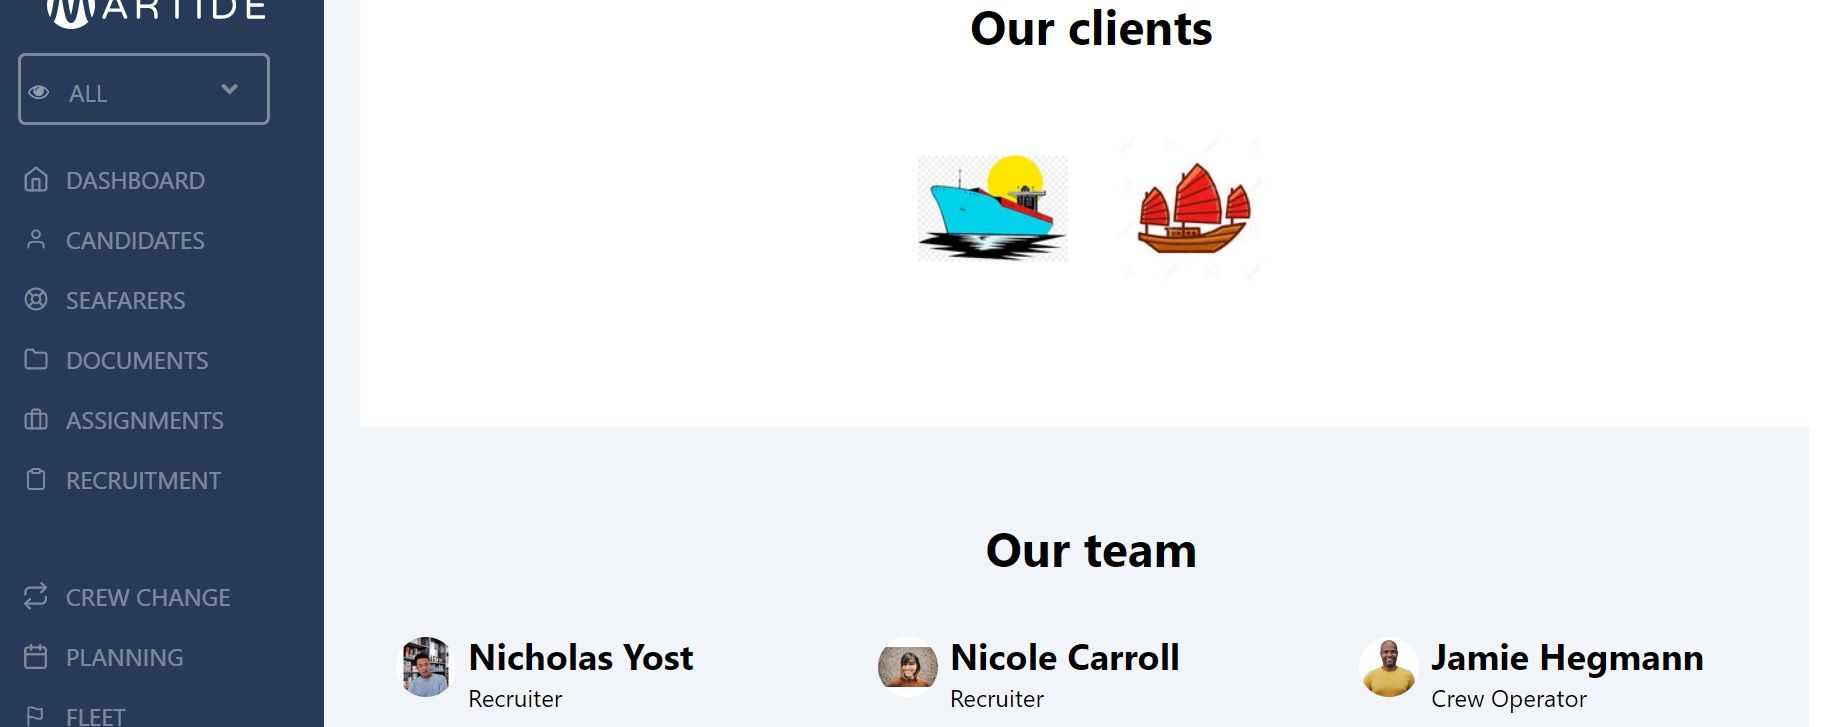 screenshot of the clients and team sections.